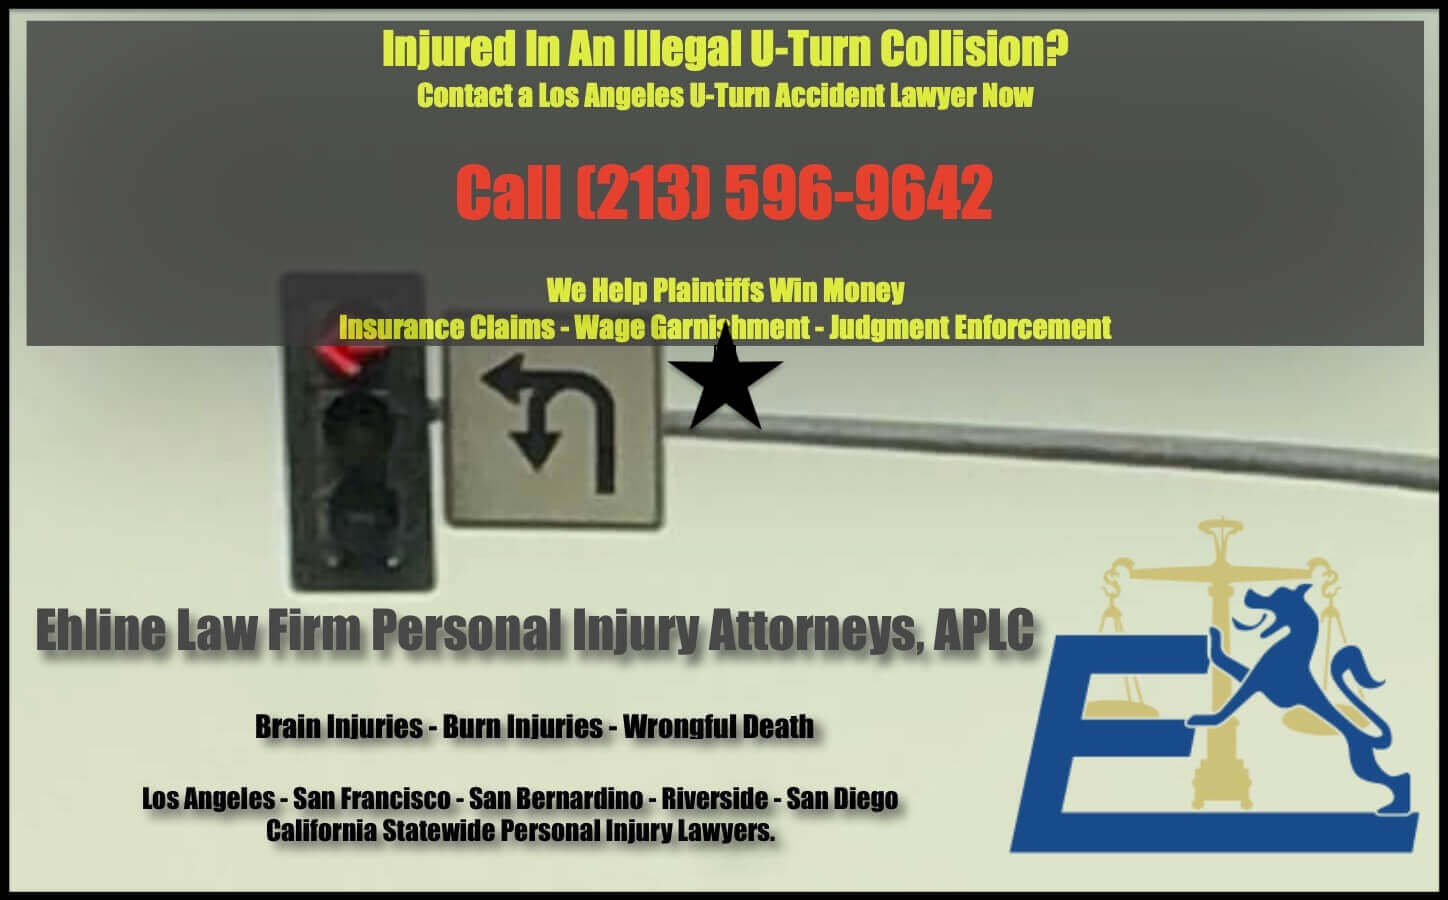 Superior U Turn Collision Attorney in Los Angeles County in a city near you. Ehline Law Firm.